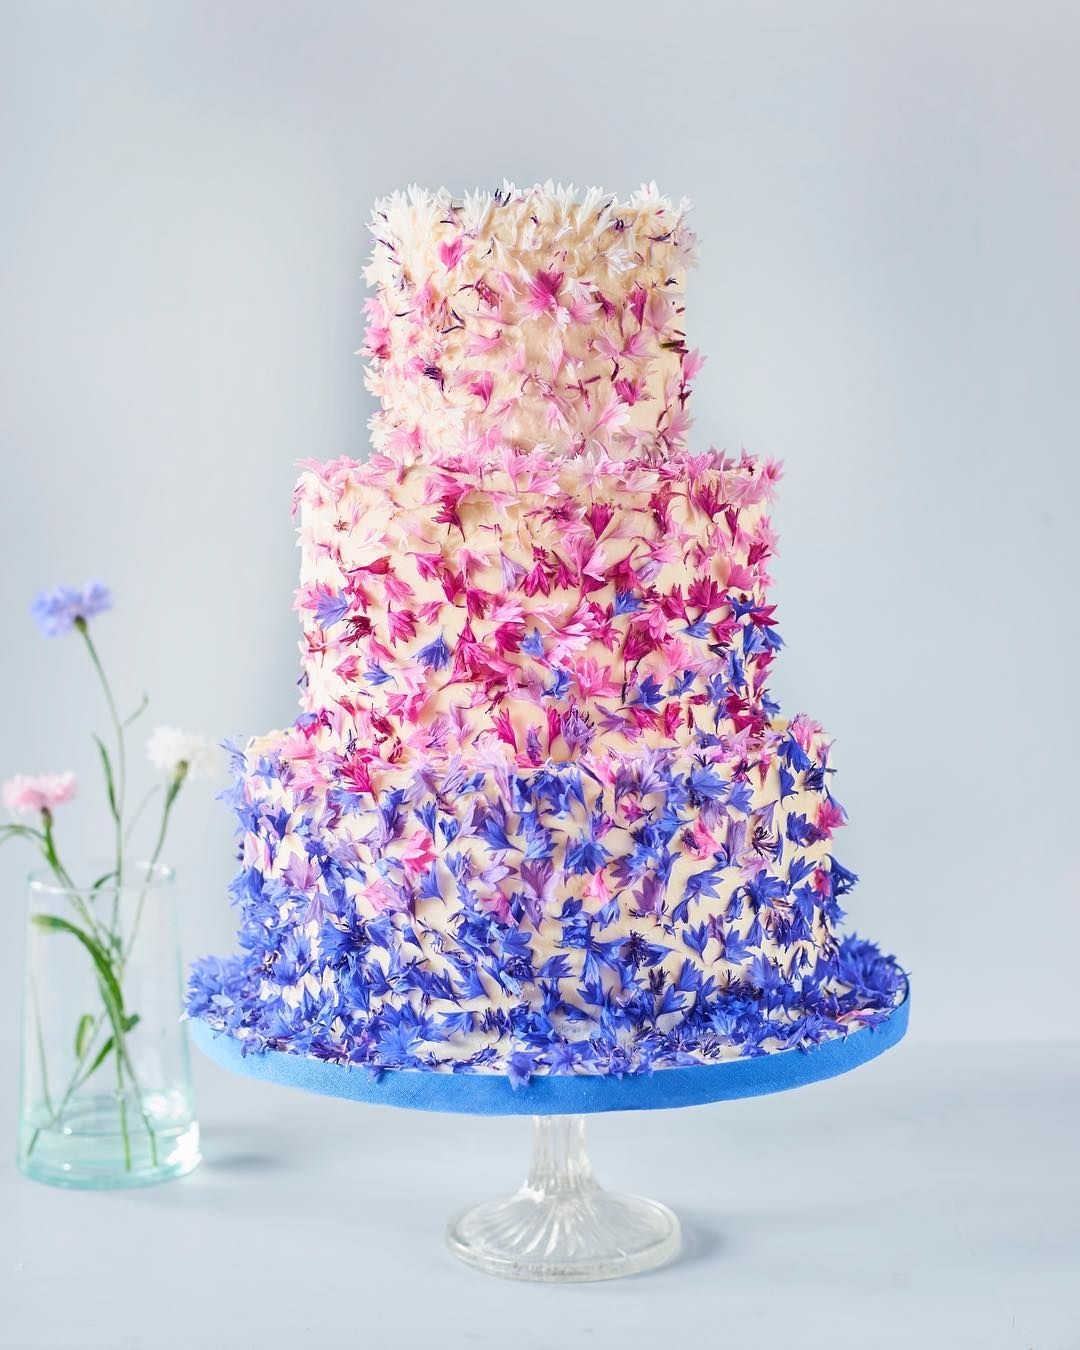 Decades ago most wedding cakes were made from dried fruit